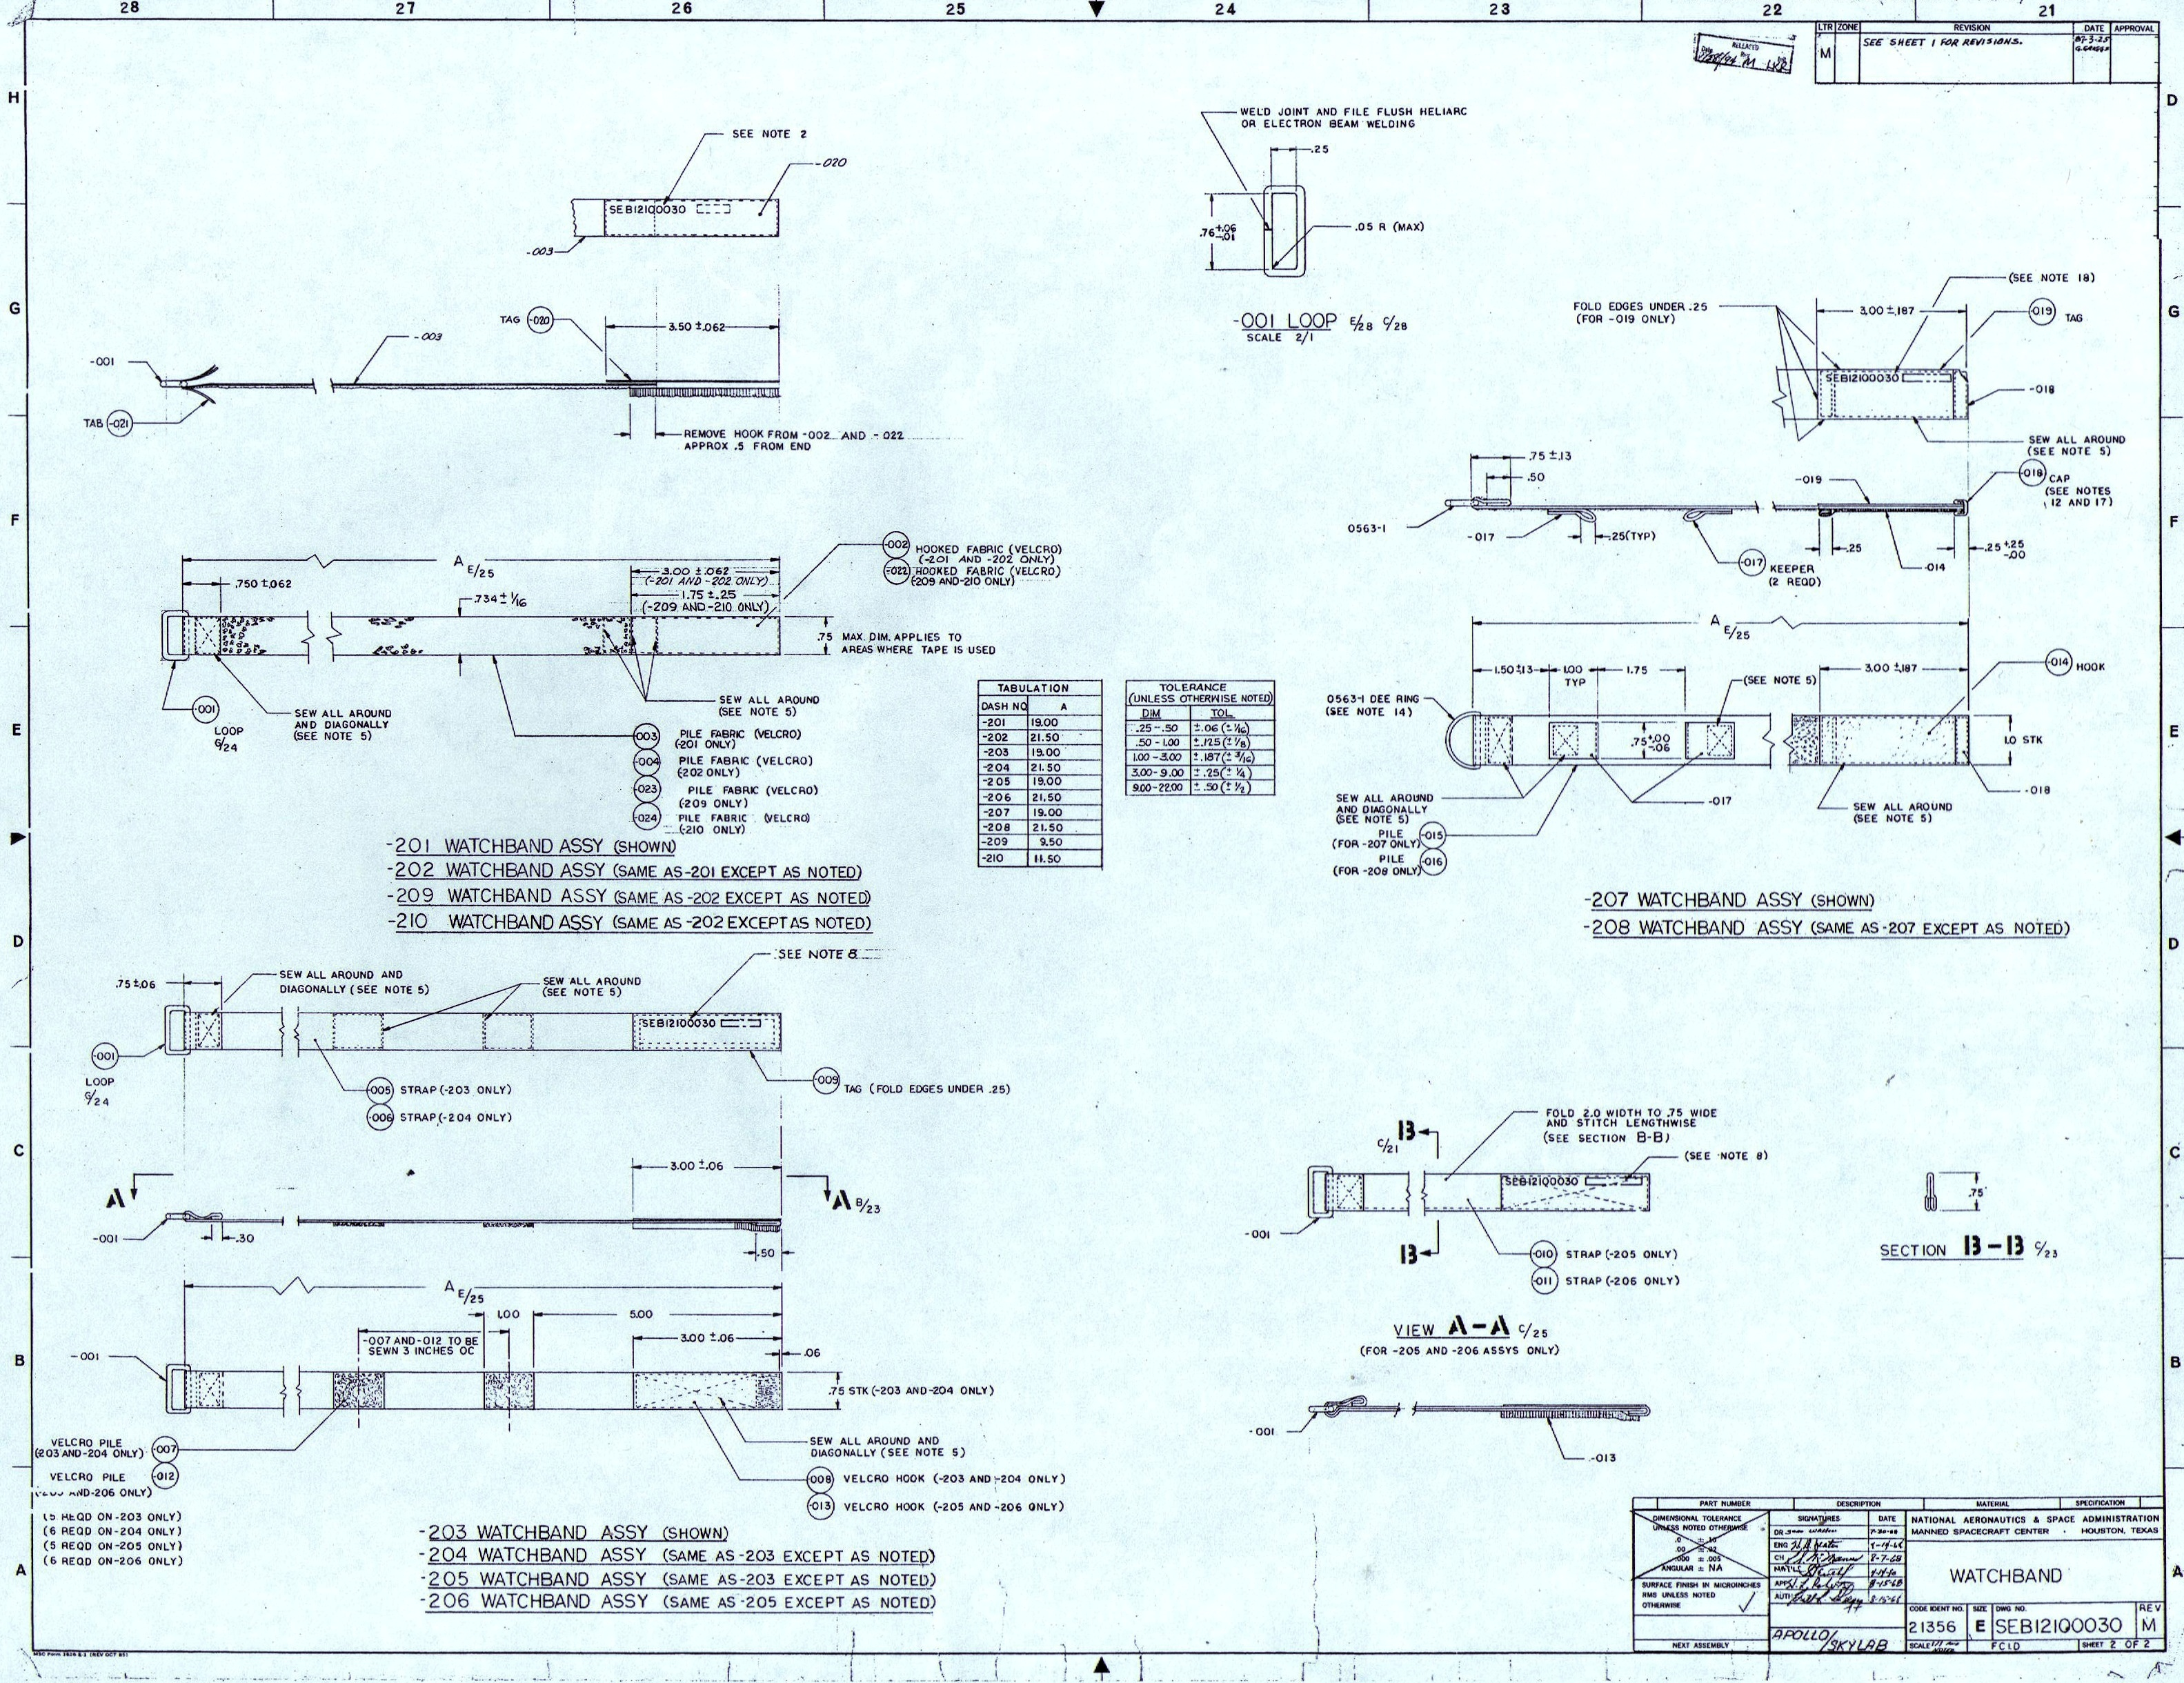 Chuck maddoxs watch blog from nasa velcro strap blueprints click on the images above to pull up the full resolution 25m scans malvernweather Gallery